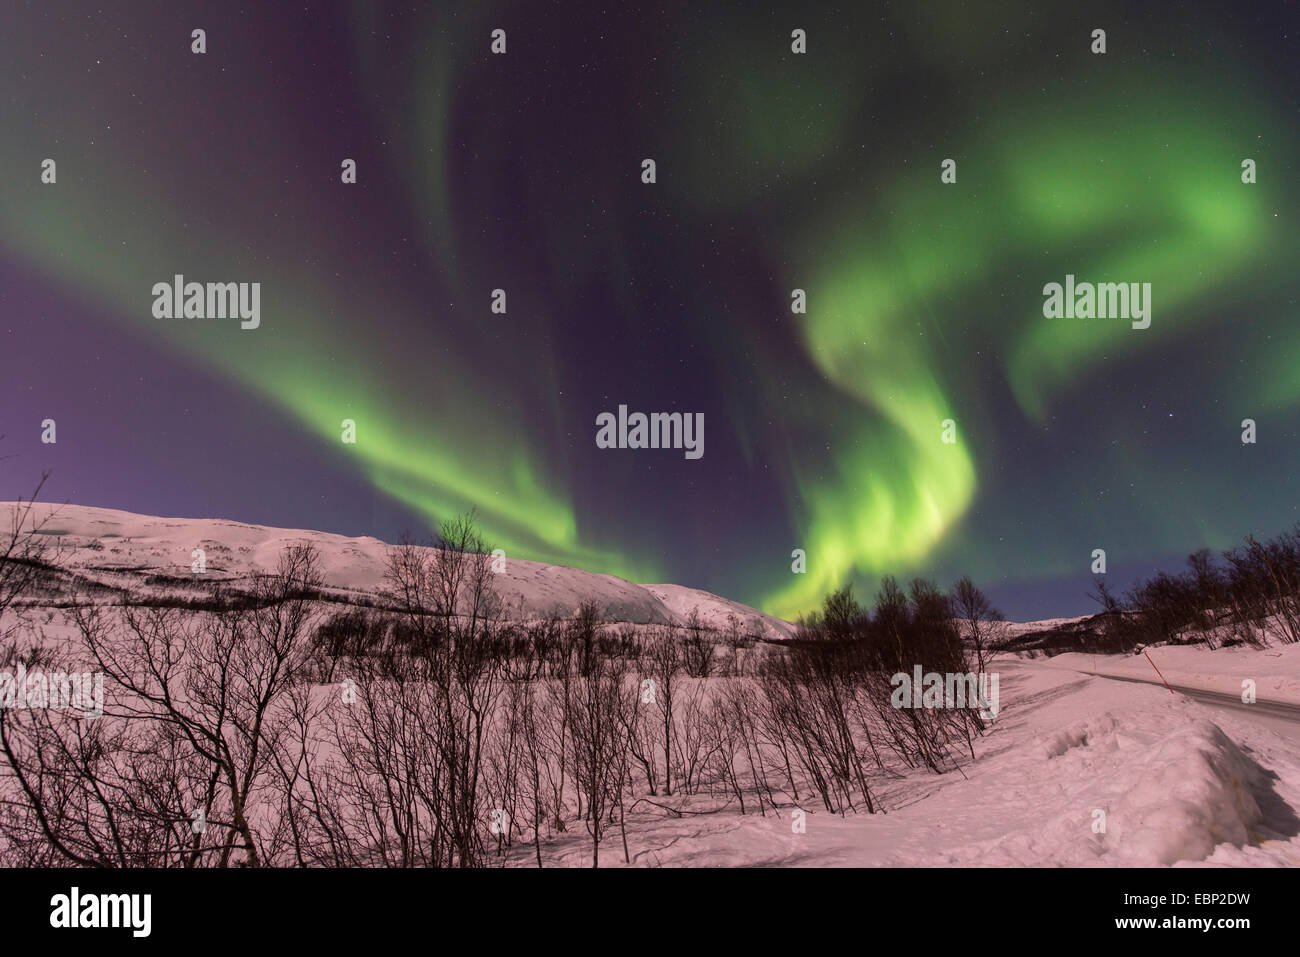 Aurora Eddy im Winter Landschaft, Norwegen, Troms, Finnvikdalen Stockbild